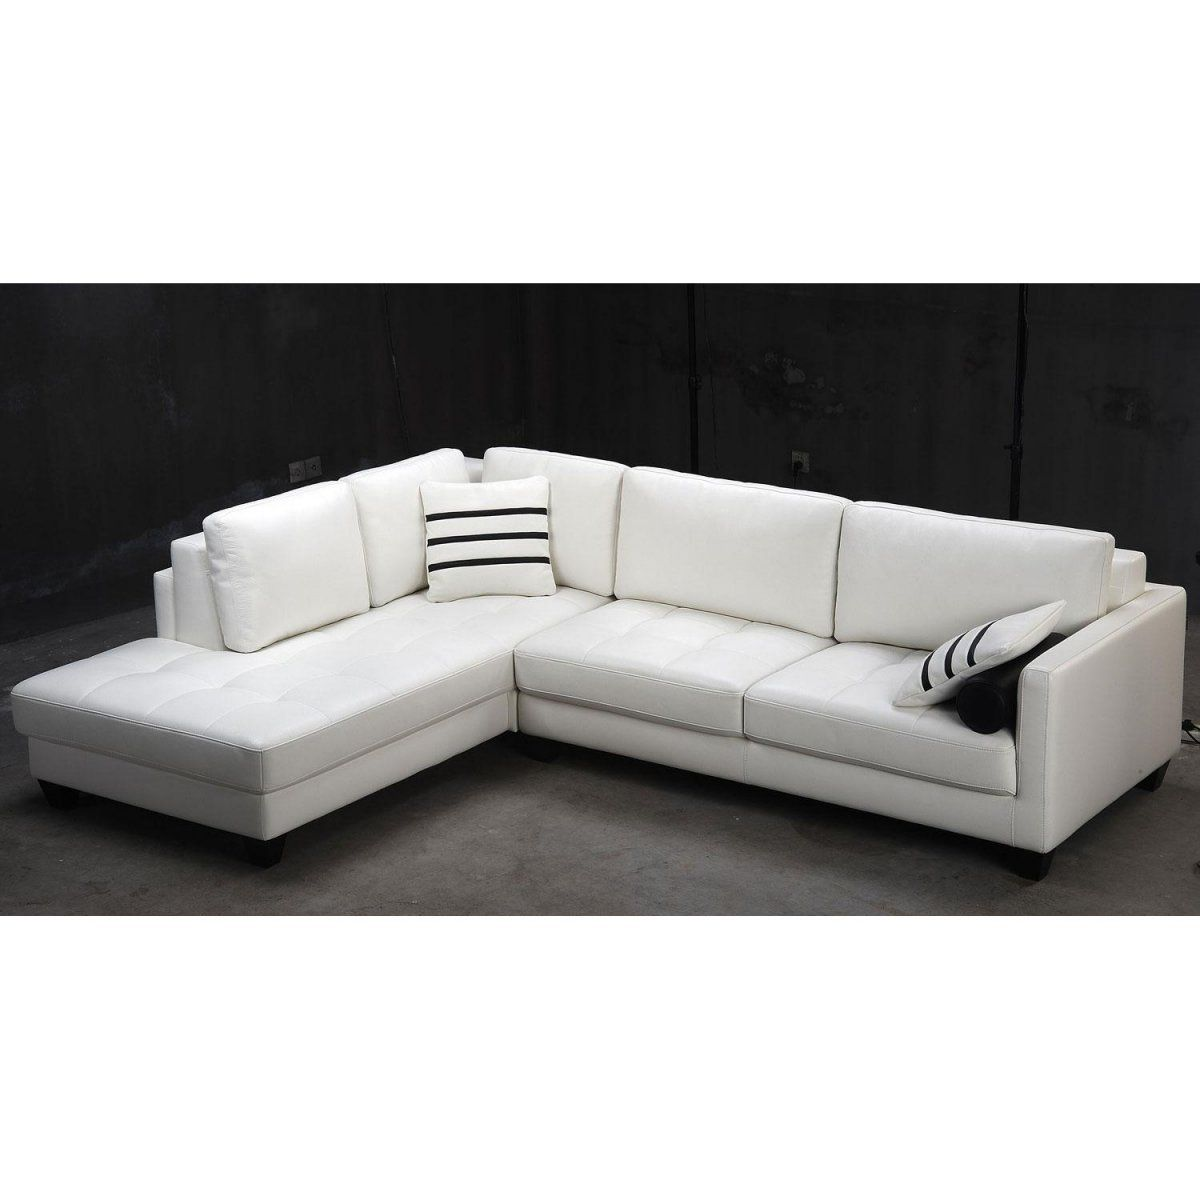 Strange Tosh Furniture Modern White Leather Sectional Sofa Leather Machost Co Dining Chair Design Ideas Machostcouk